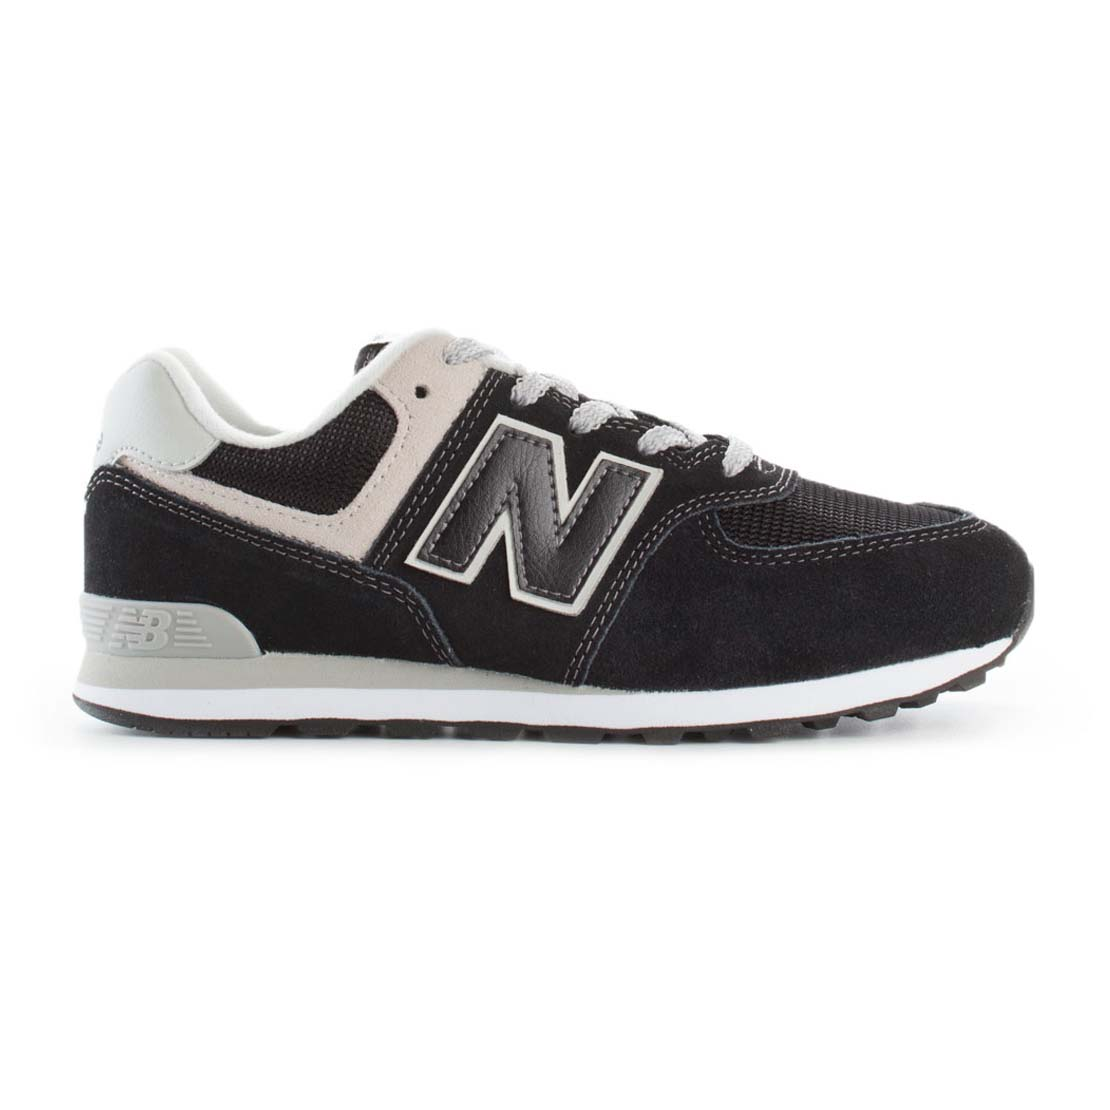 New Balance 574 Core GS ( GC574GK ) παπούτσια    παιδί    σχολικά  size 35 5 40    casual